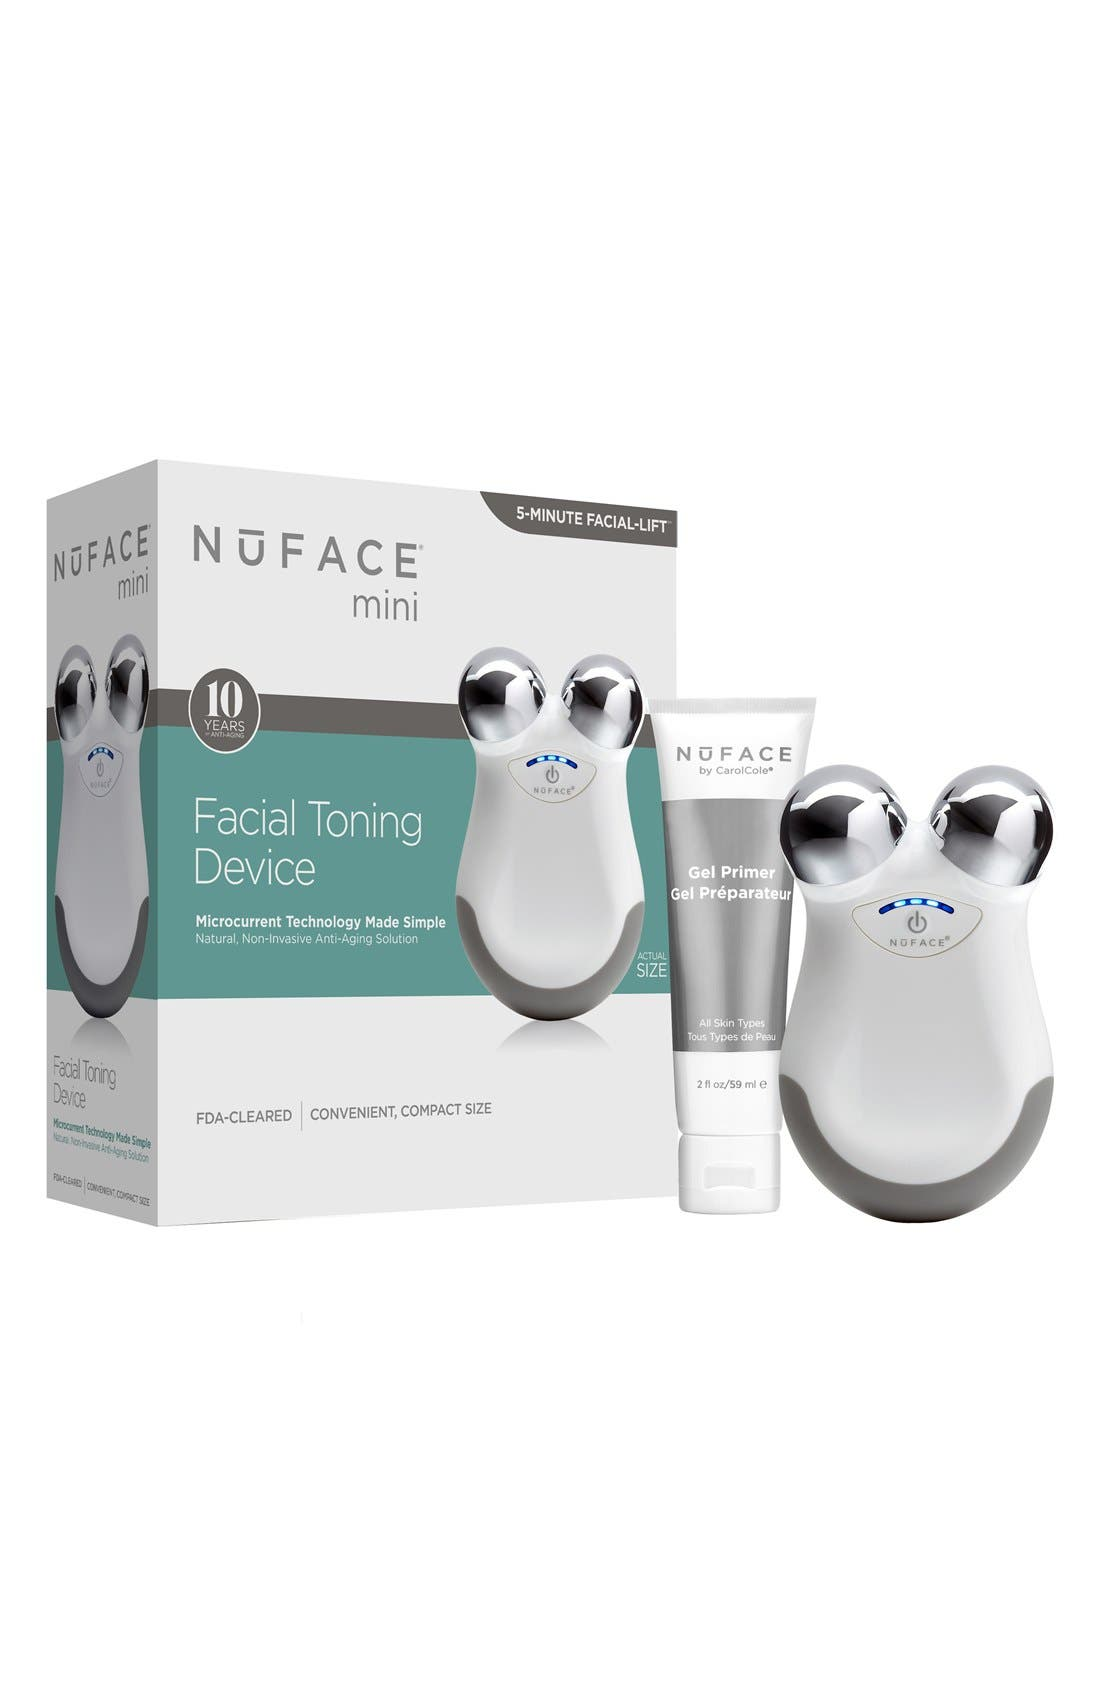 NuFACE® mini Facial Toning Device